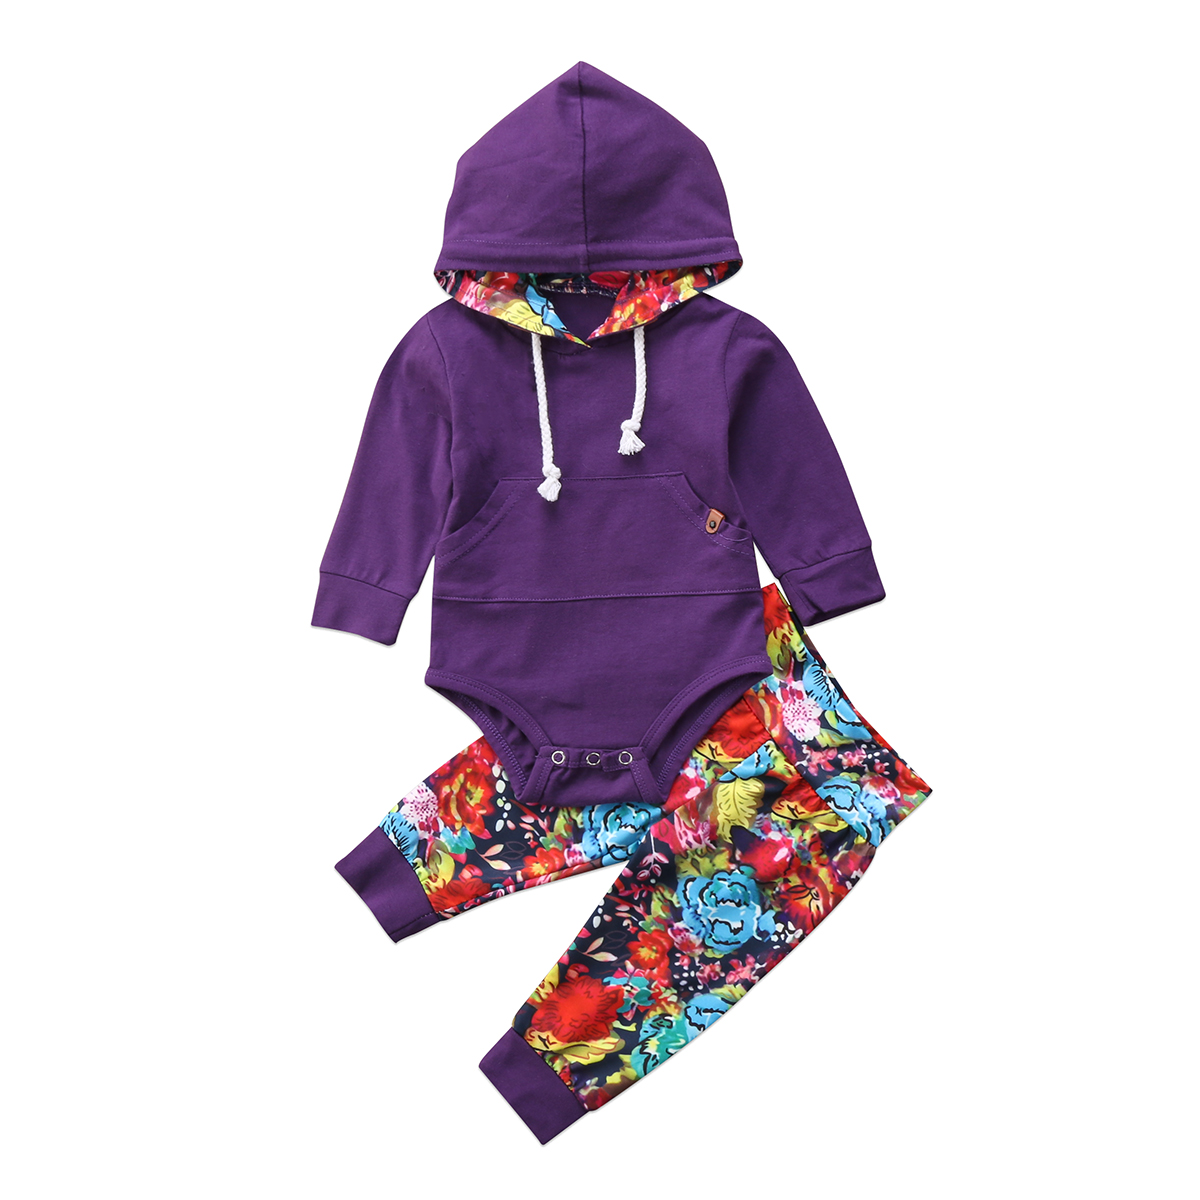 Infant Newborn Baby Girl Clothes Hooded Tops+Long Floral Pants Leggings 2PCS Outfit Set